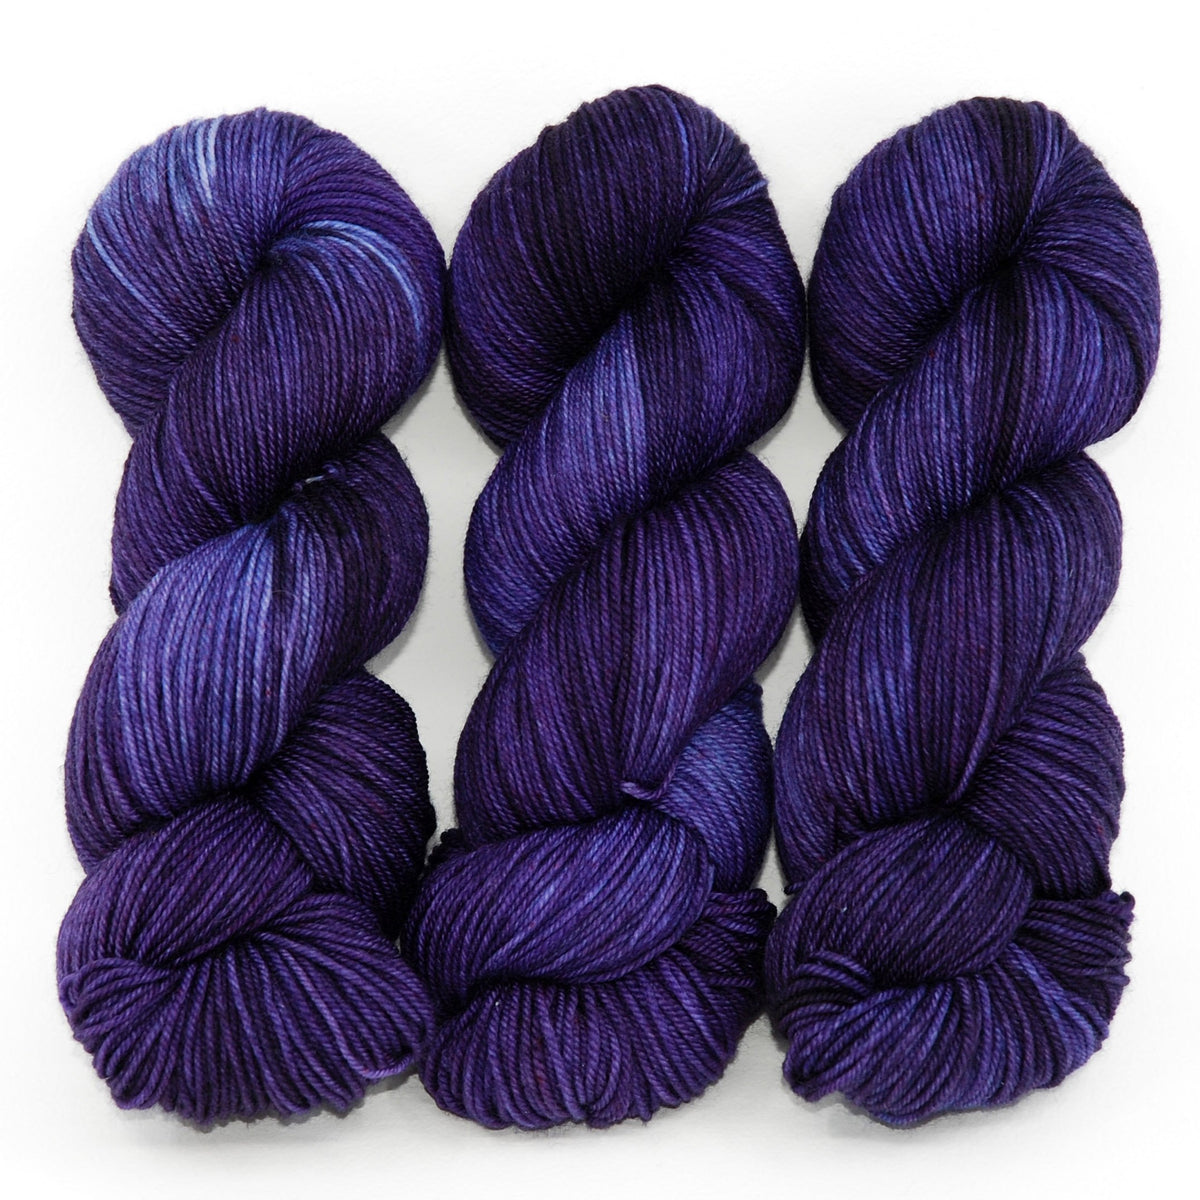 Amethyst - Indulgence Lace - Dyed Stock